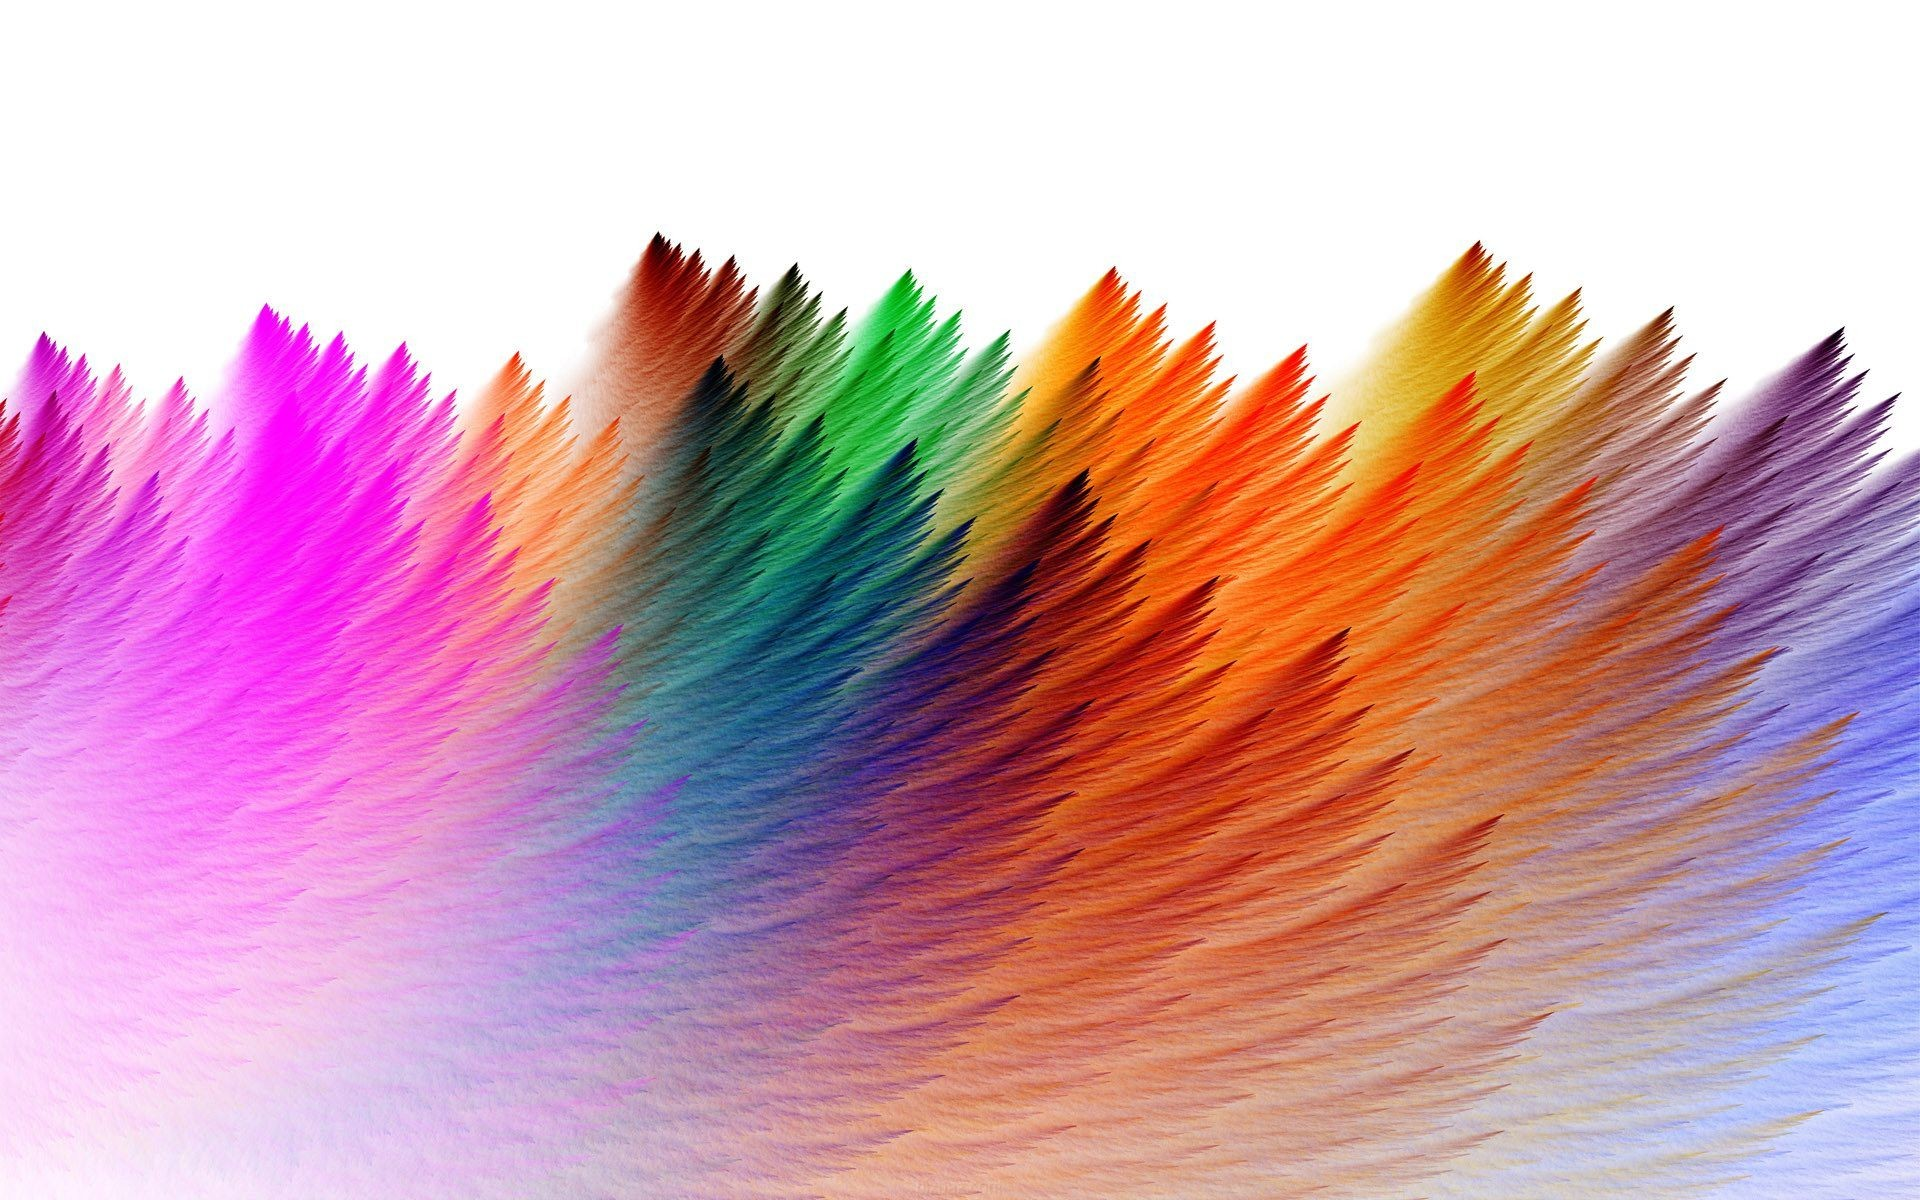 Free Wallpaper Background with Colorful Abstract